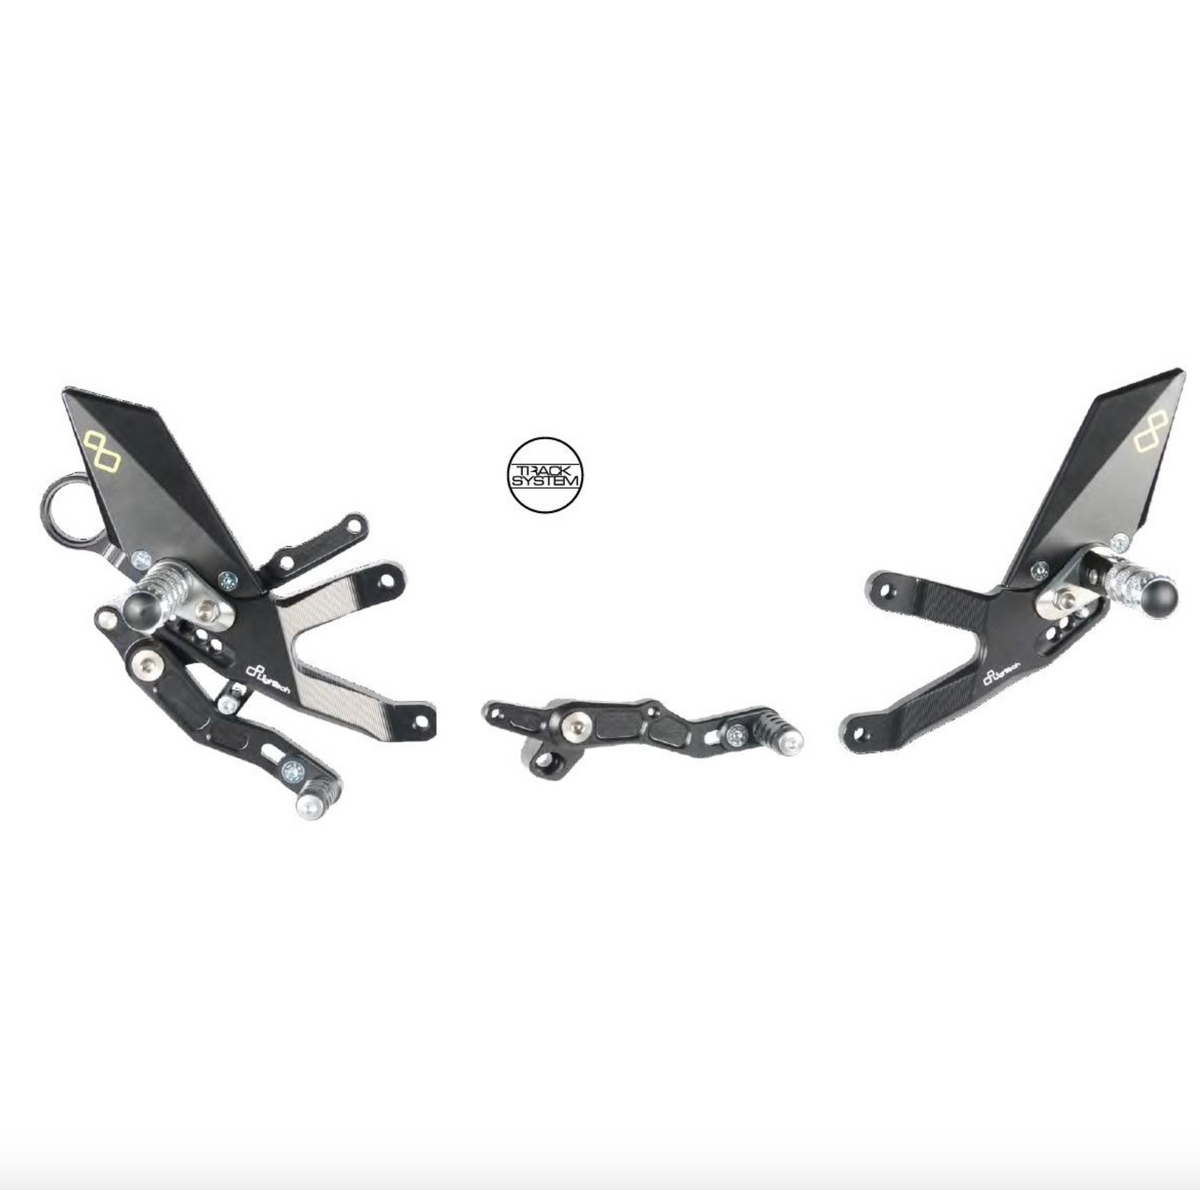 BMW - Adjustable Rearsets, Rearsets, LighTech - Averys Motorcycles